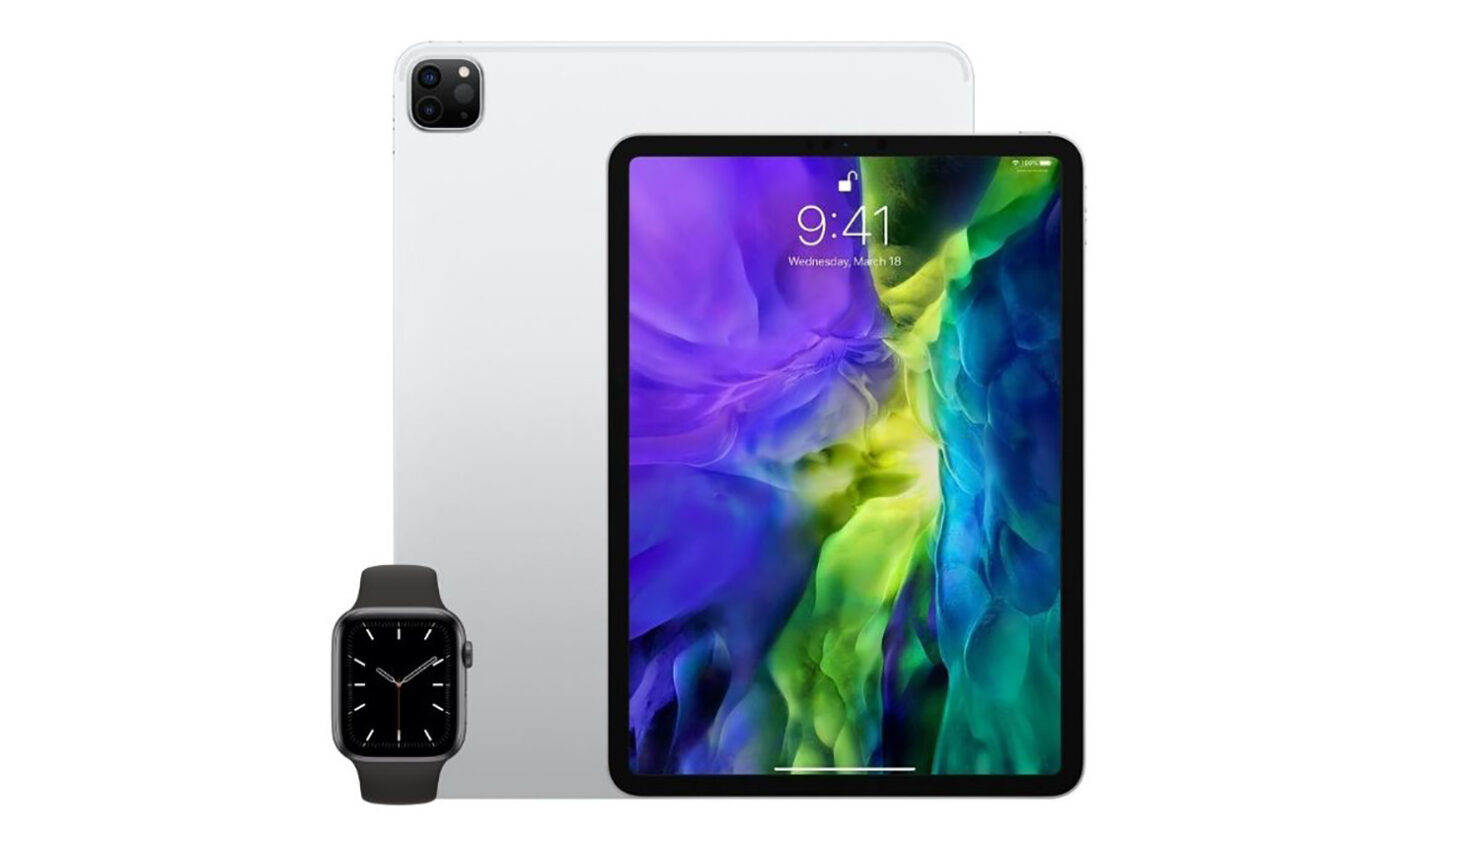 Apple Files Seven New iPad Models Running iPadOS 14, Eight Apple Watch Versions With EEC, Hinting at Imminent Launch